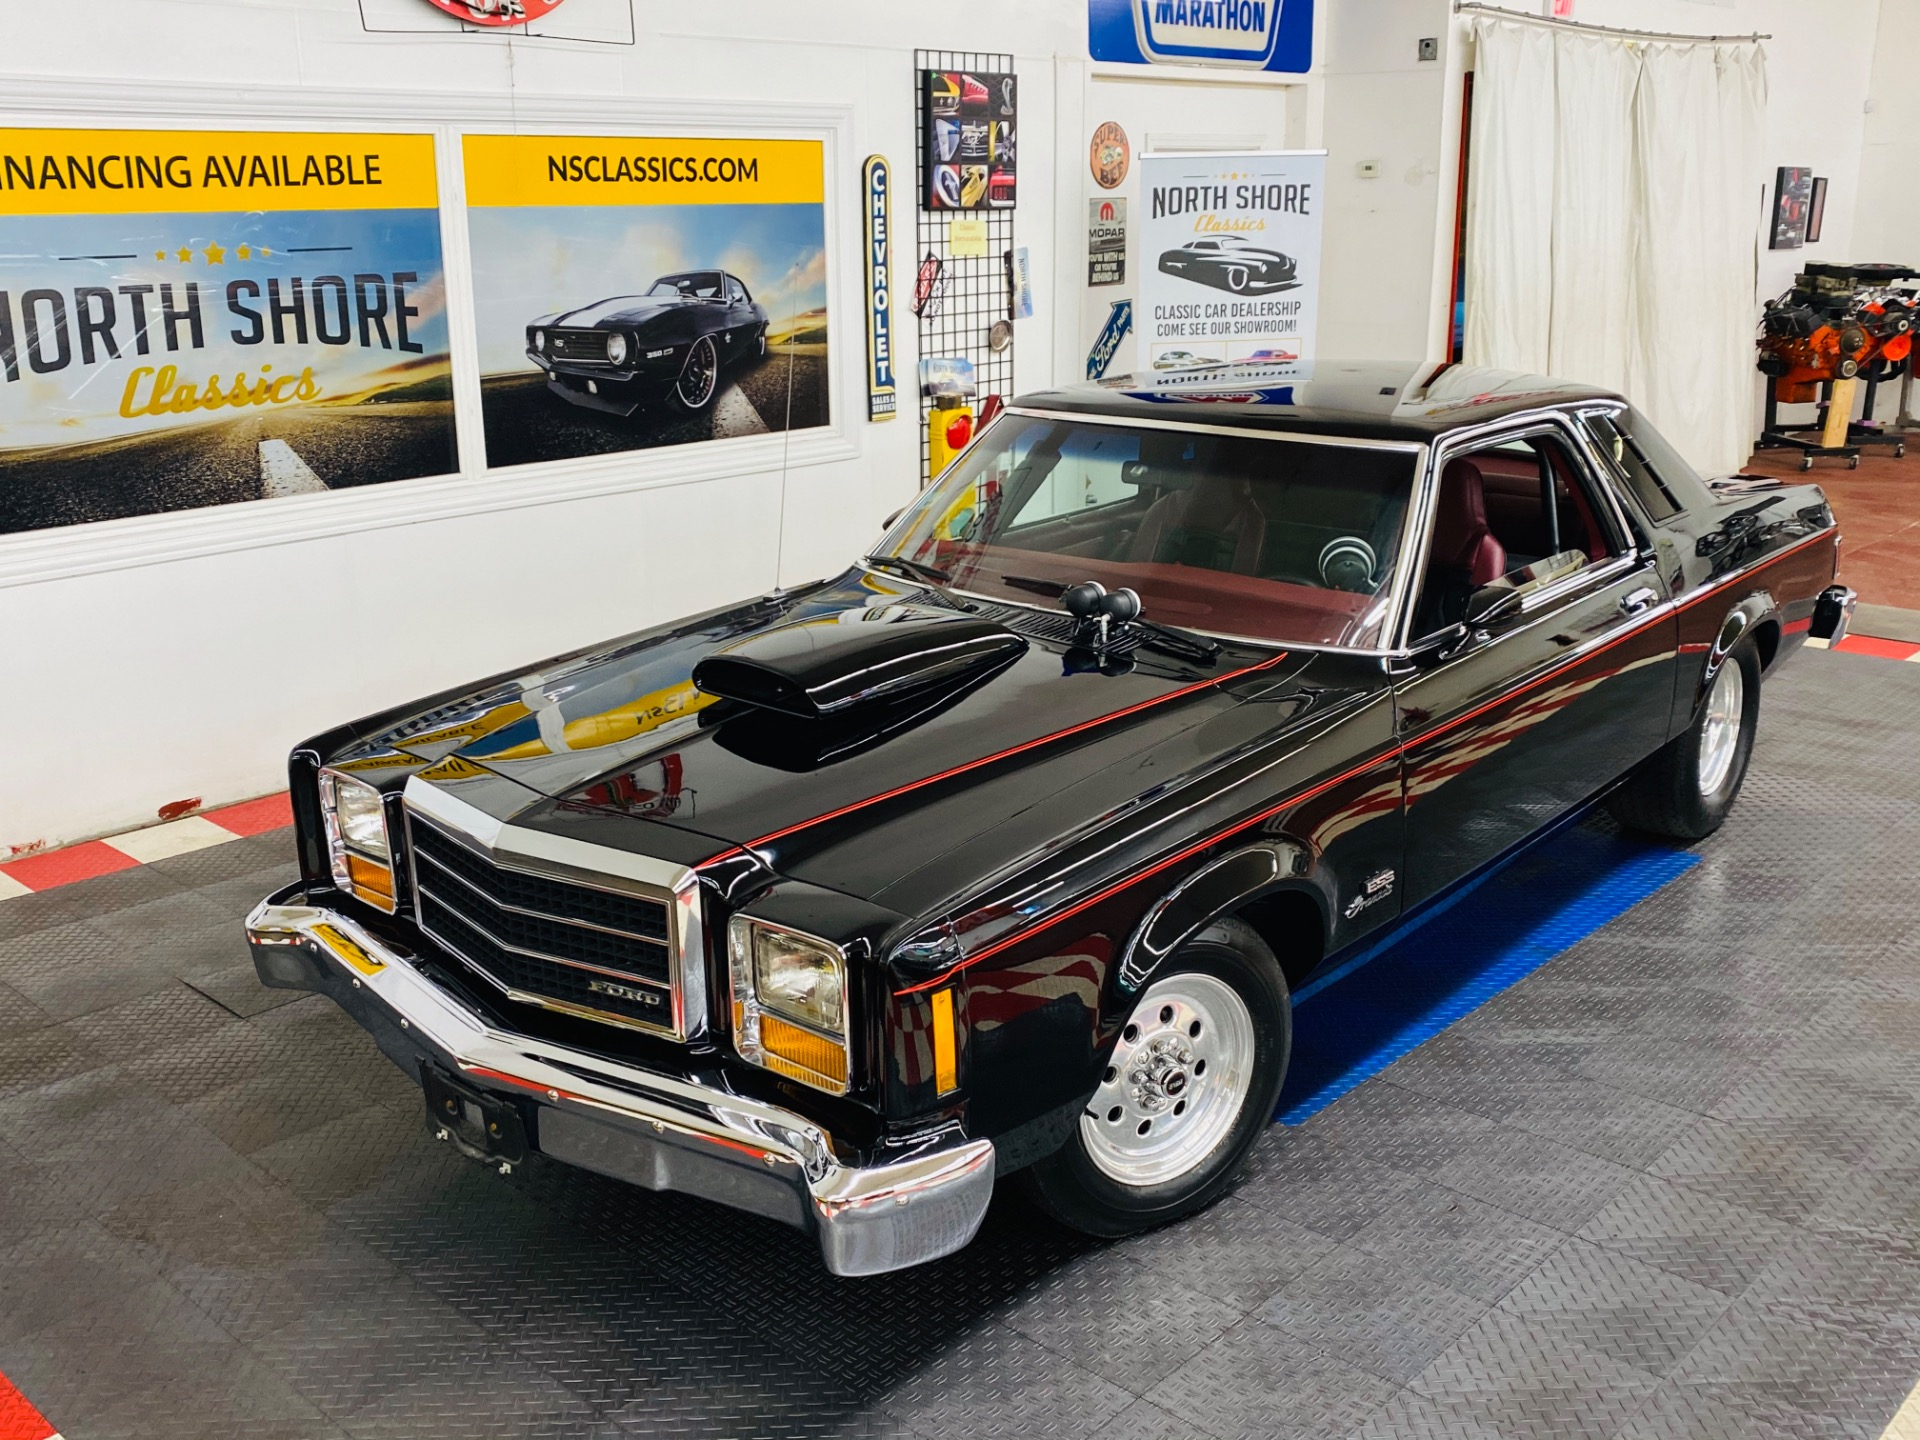 Used 1978 Ford Granada - ESS 351 V8 ENGINE - LOTS OF POWER - SUPER CLEAN BODY - SEE VIDEO | Mundelein, IL